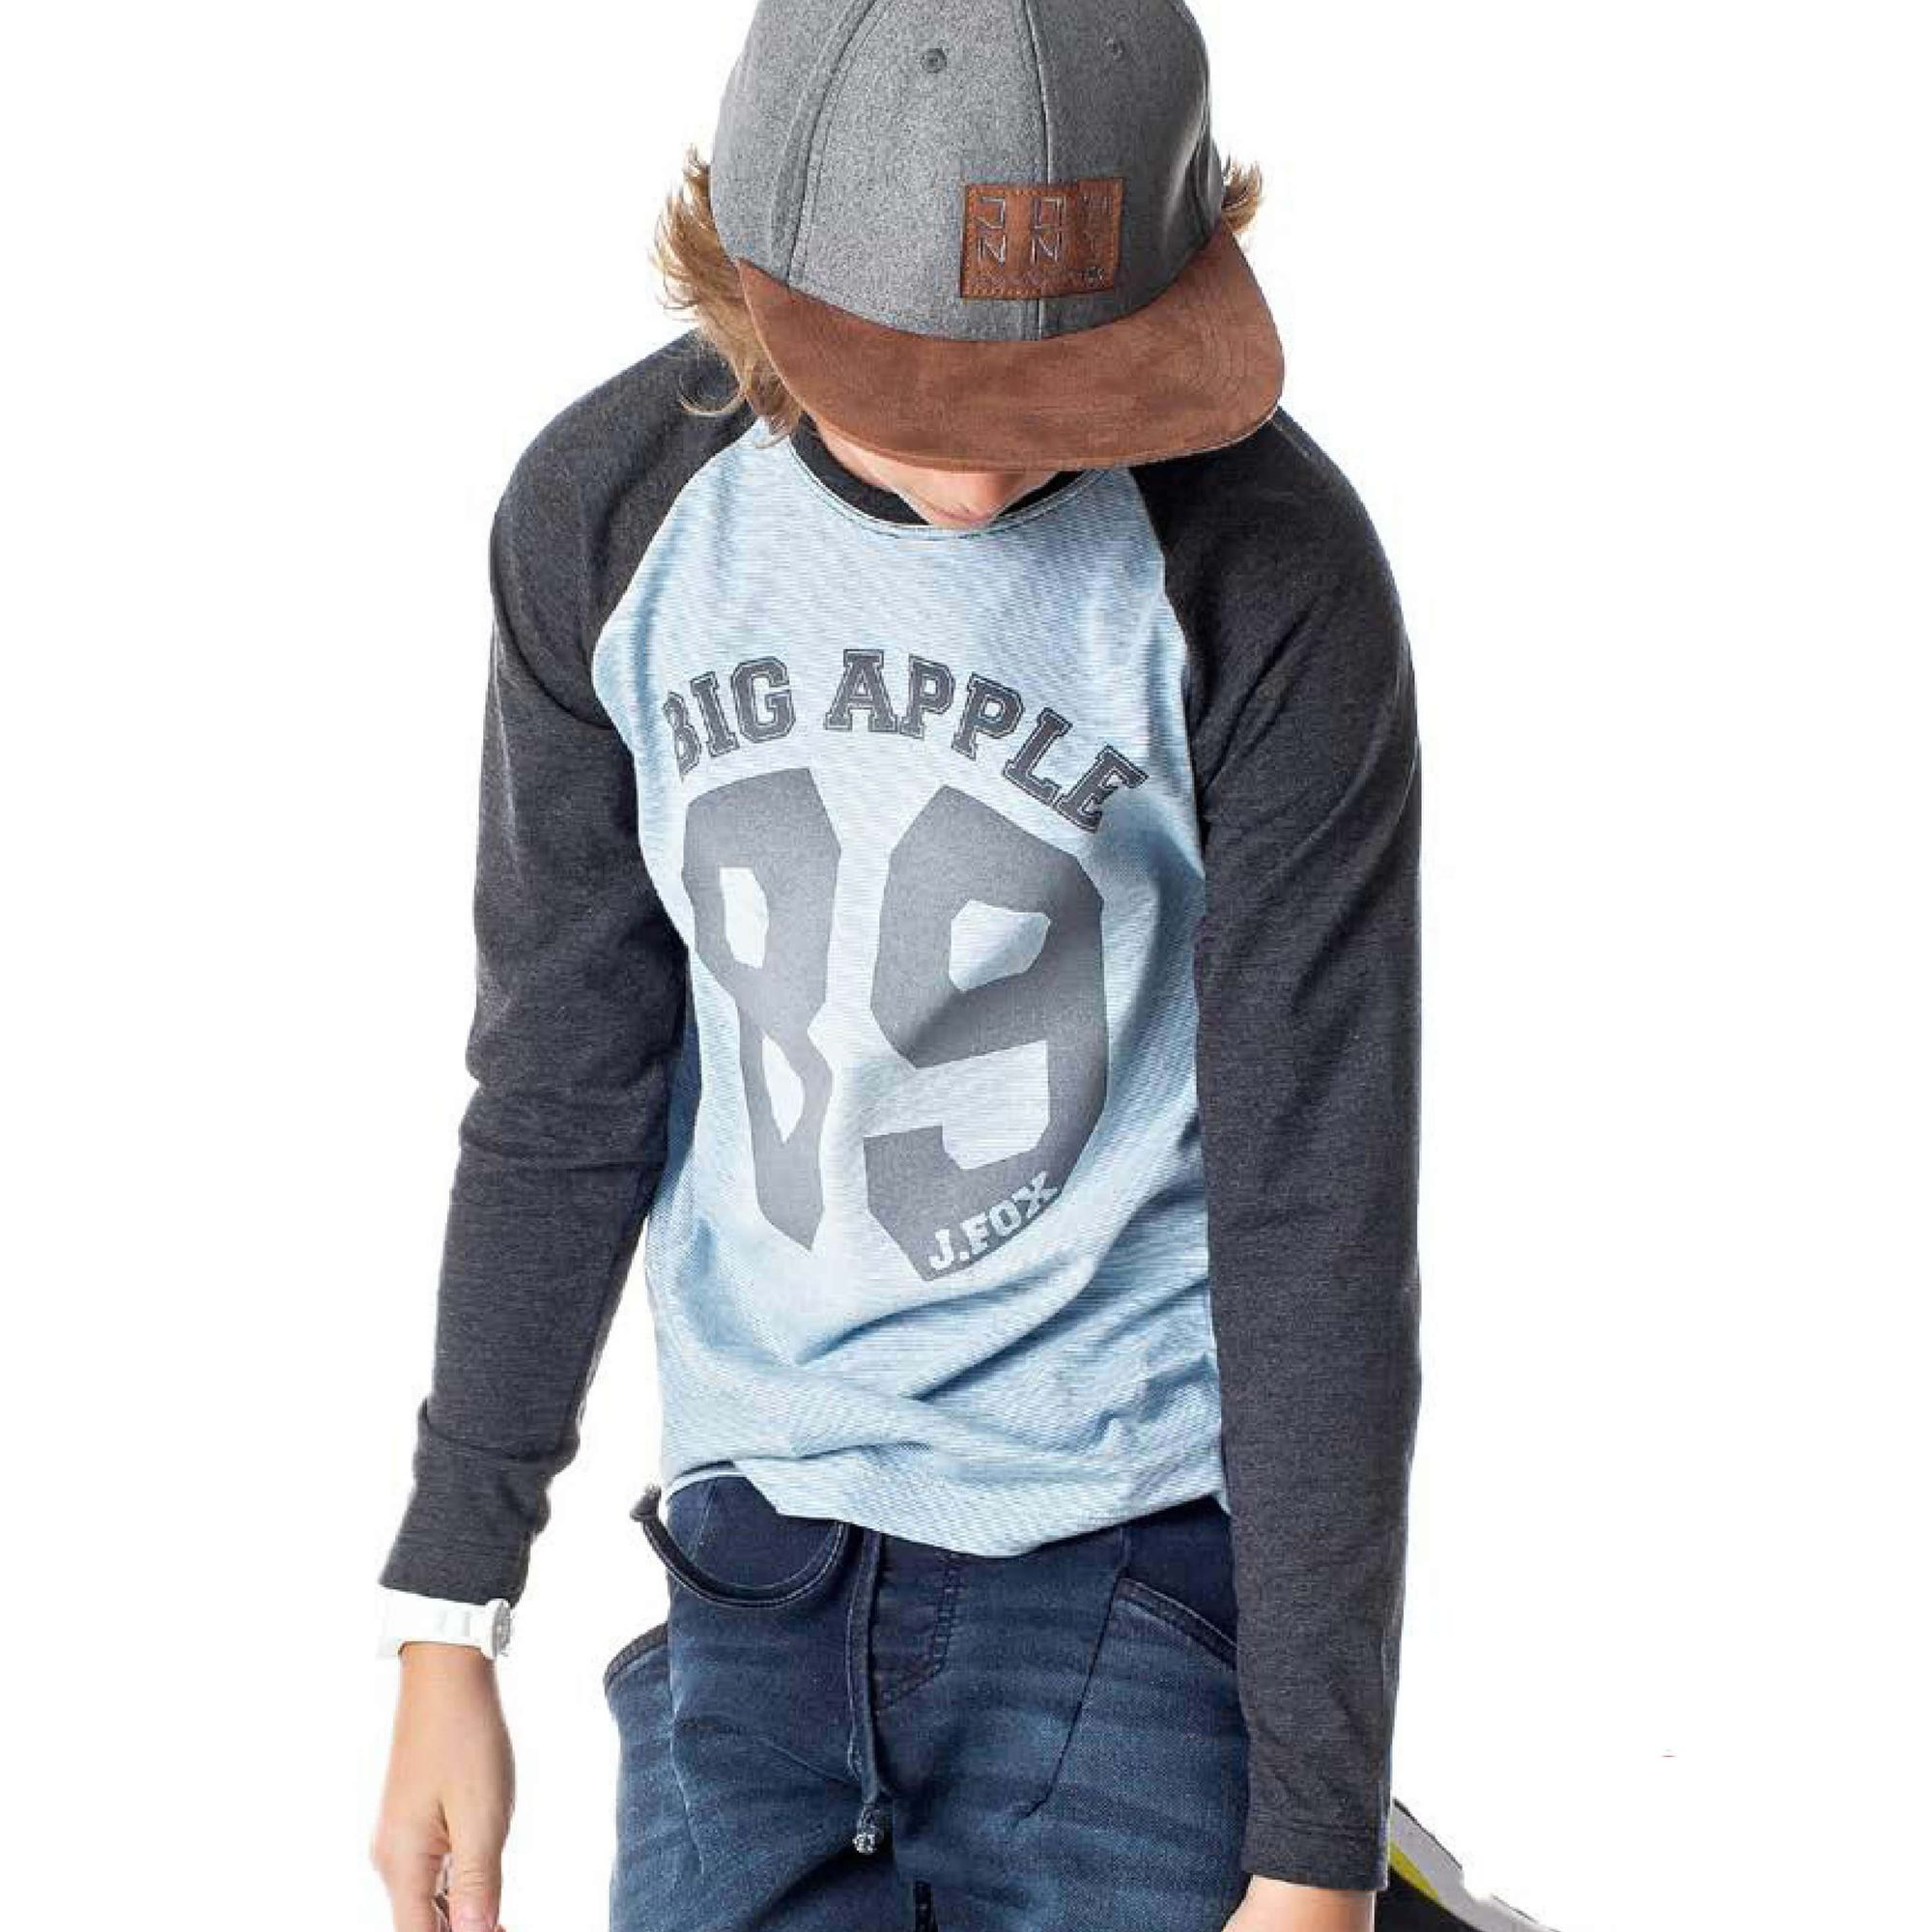 camiseta-menino-manga-longa-big-apple-malha